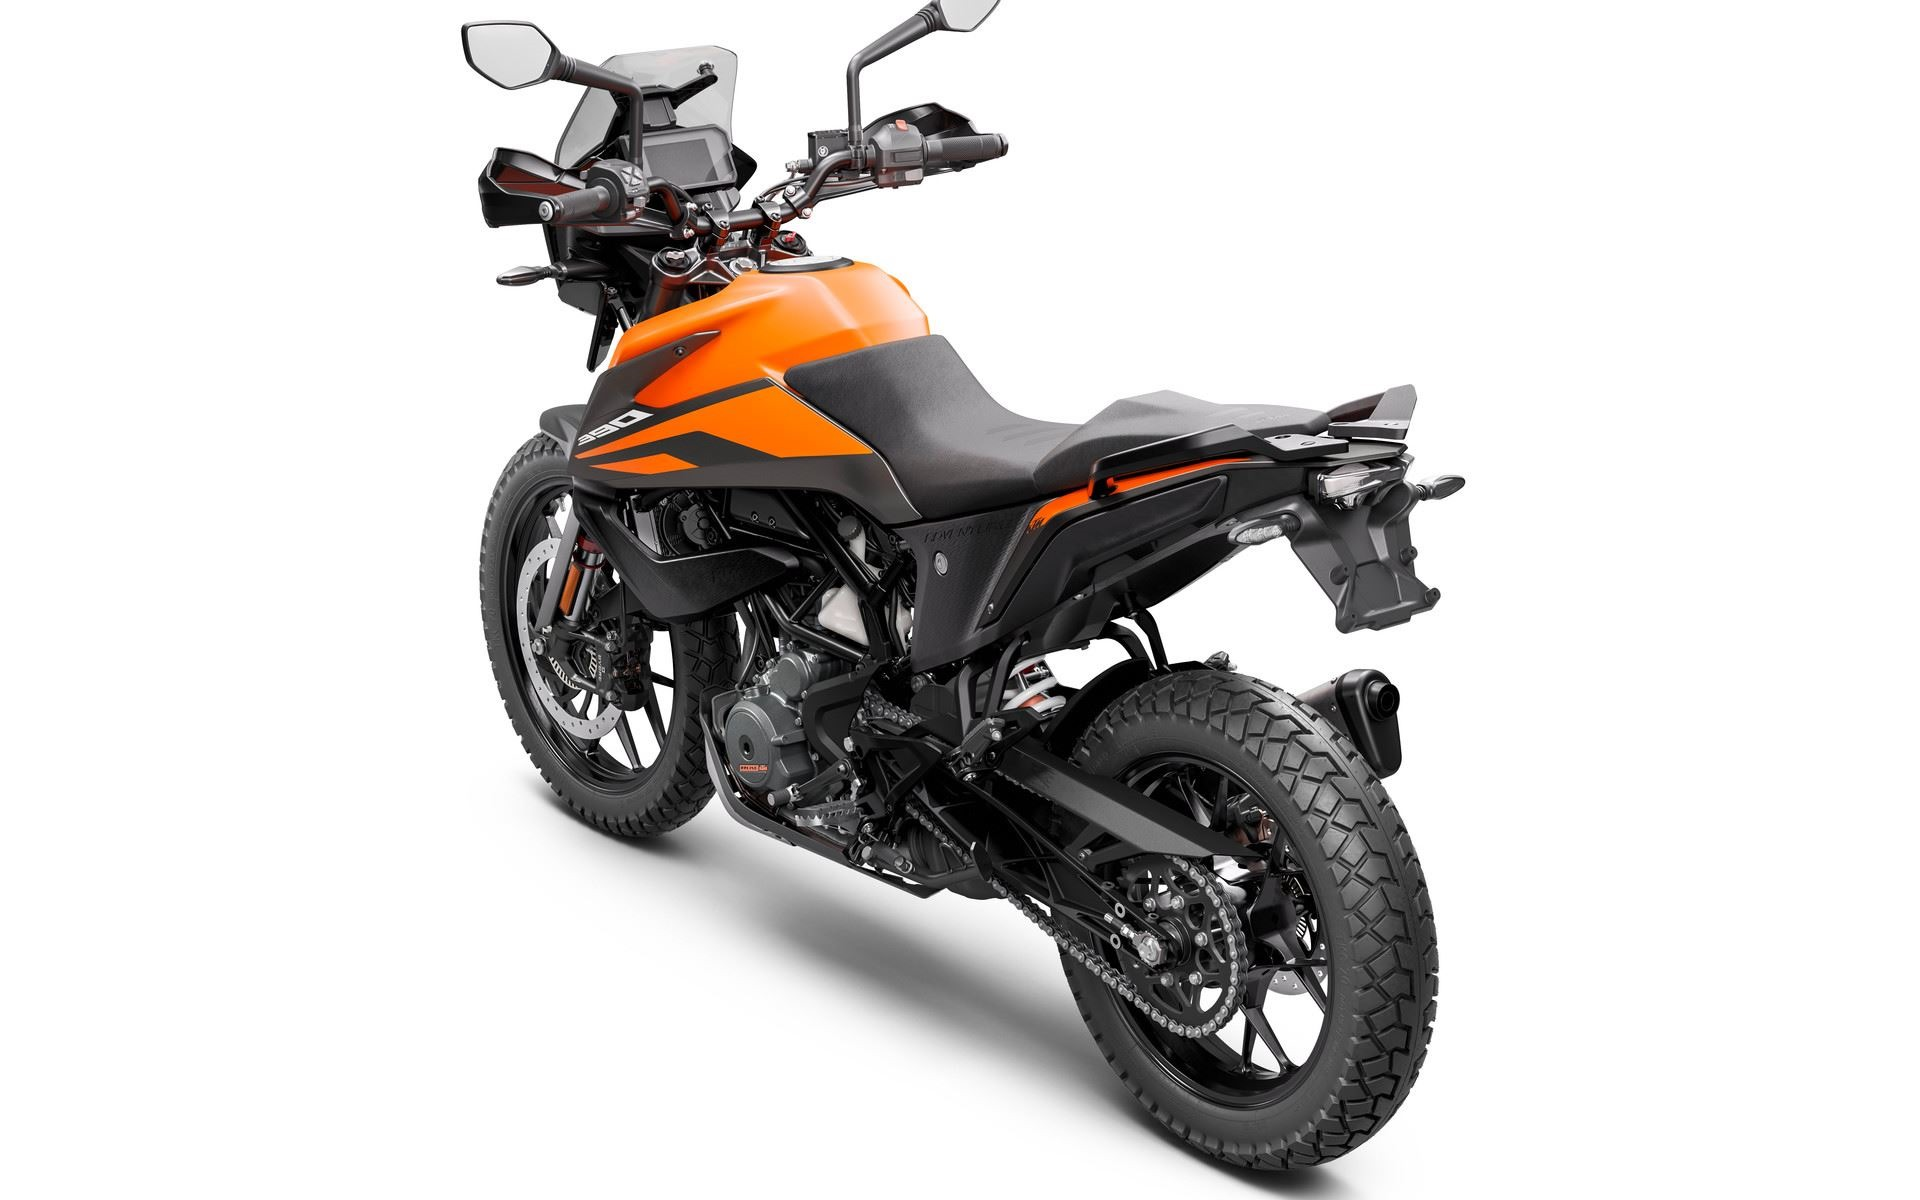 KTM 390 Adventure orange colour option